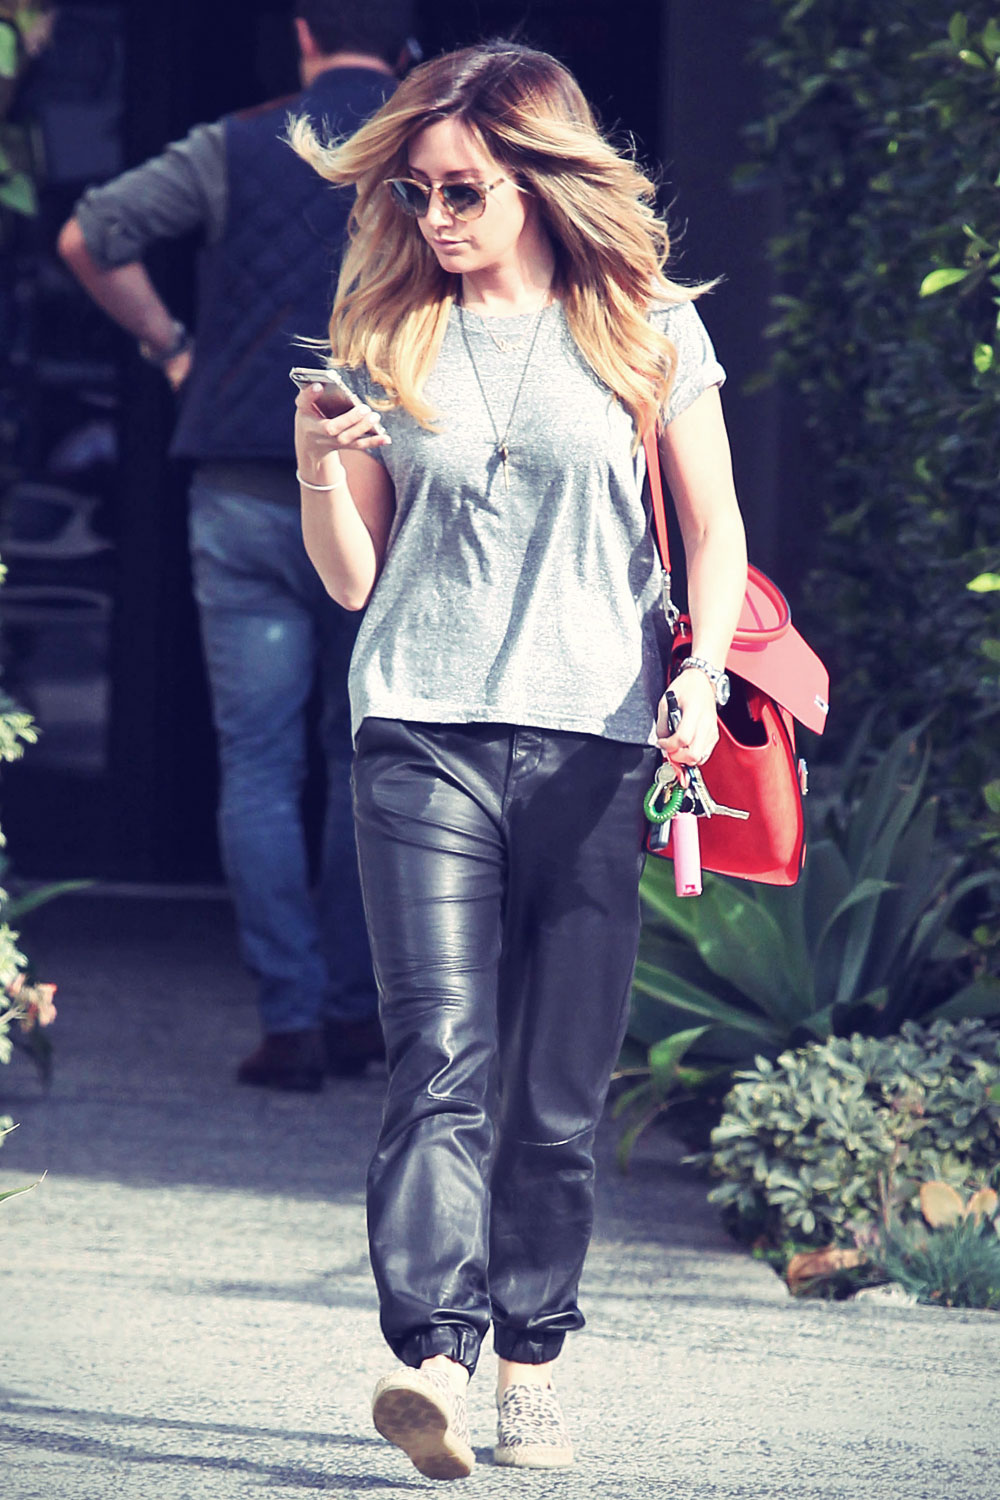 Ashley Tisdale checks out her iPhone as she runs errands around